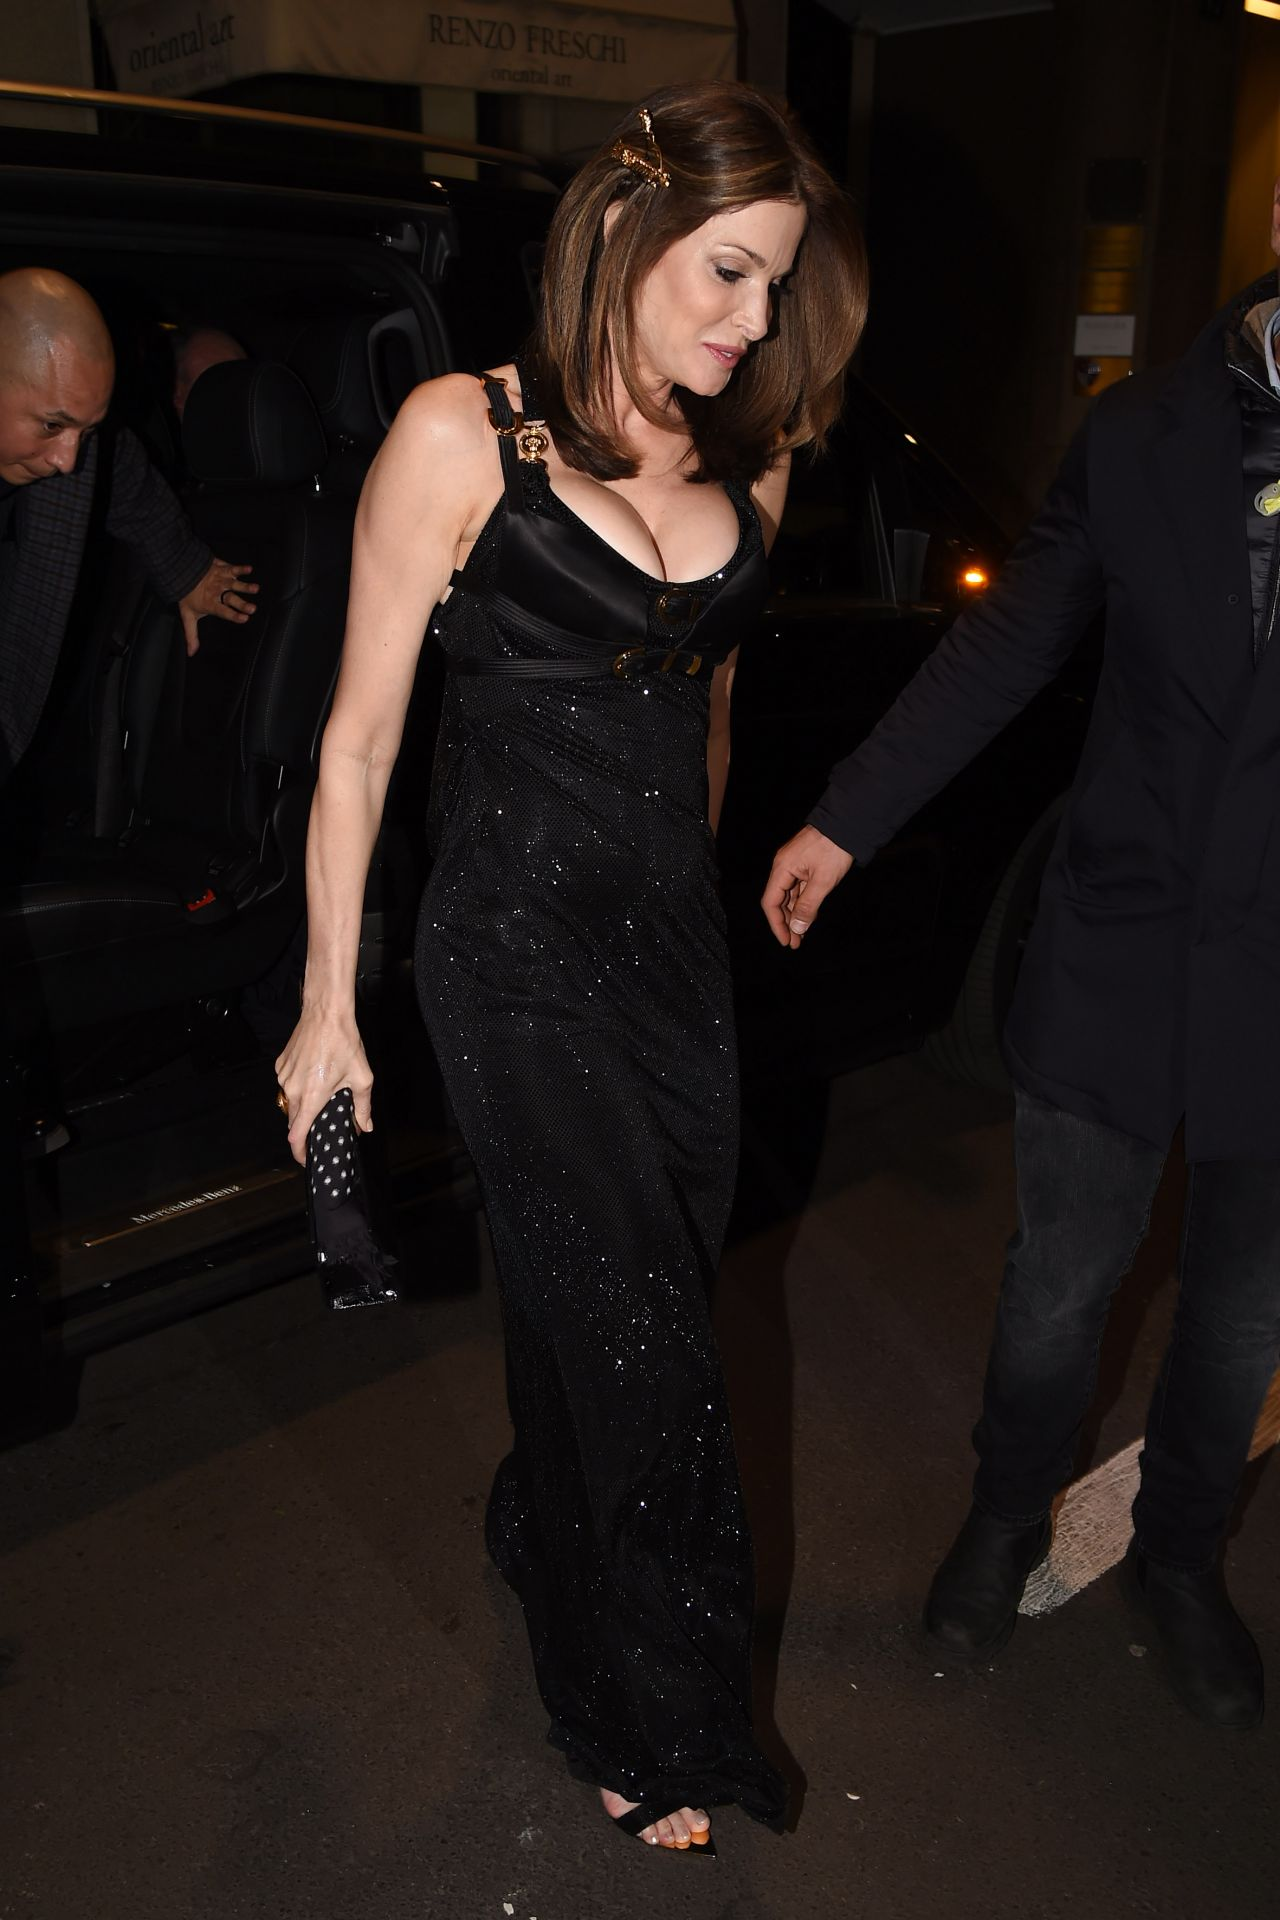 Stephanie Seymour Night Out In Milan 02 22 2019